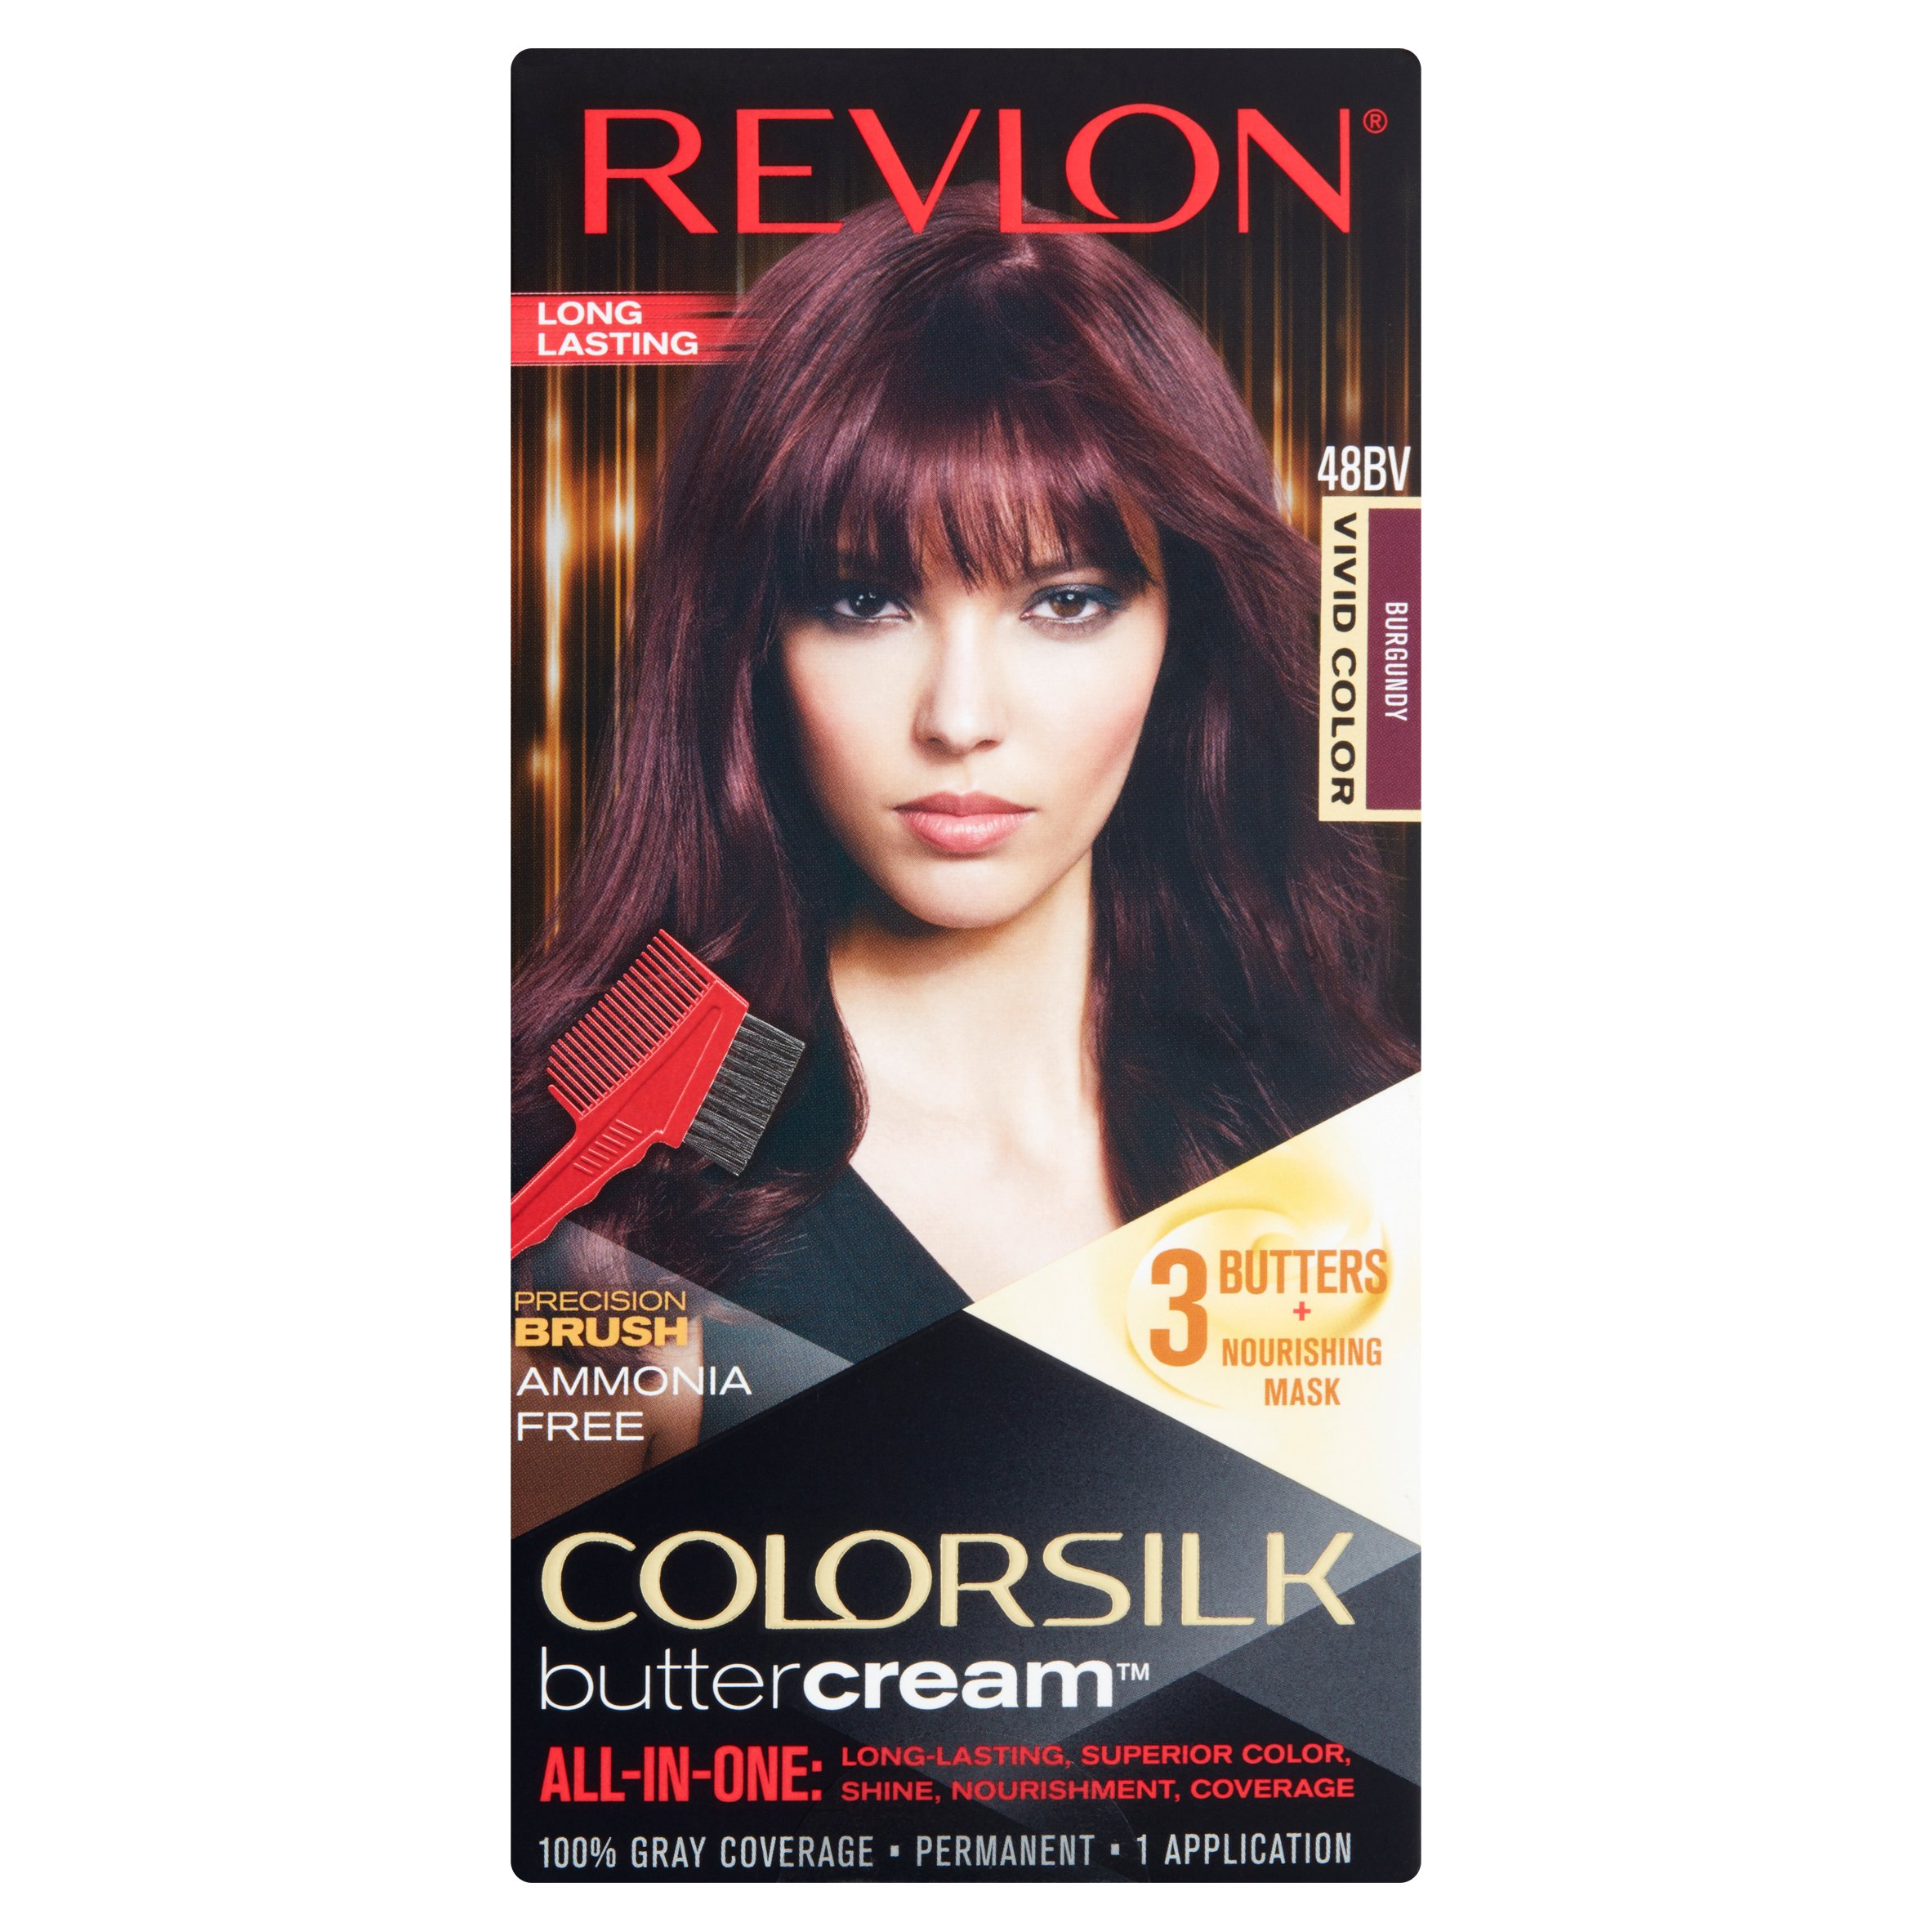 revlon colorsilk buttercream 48bv